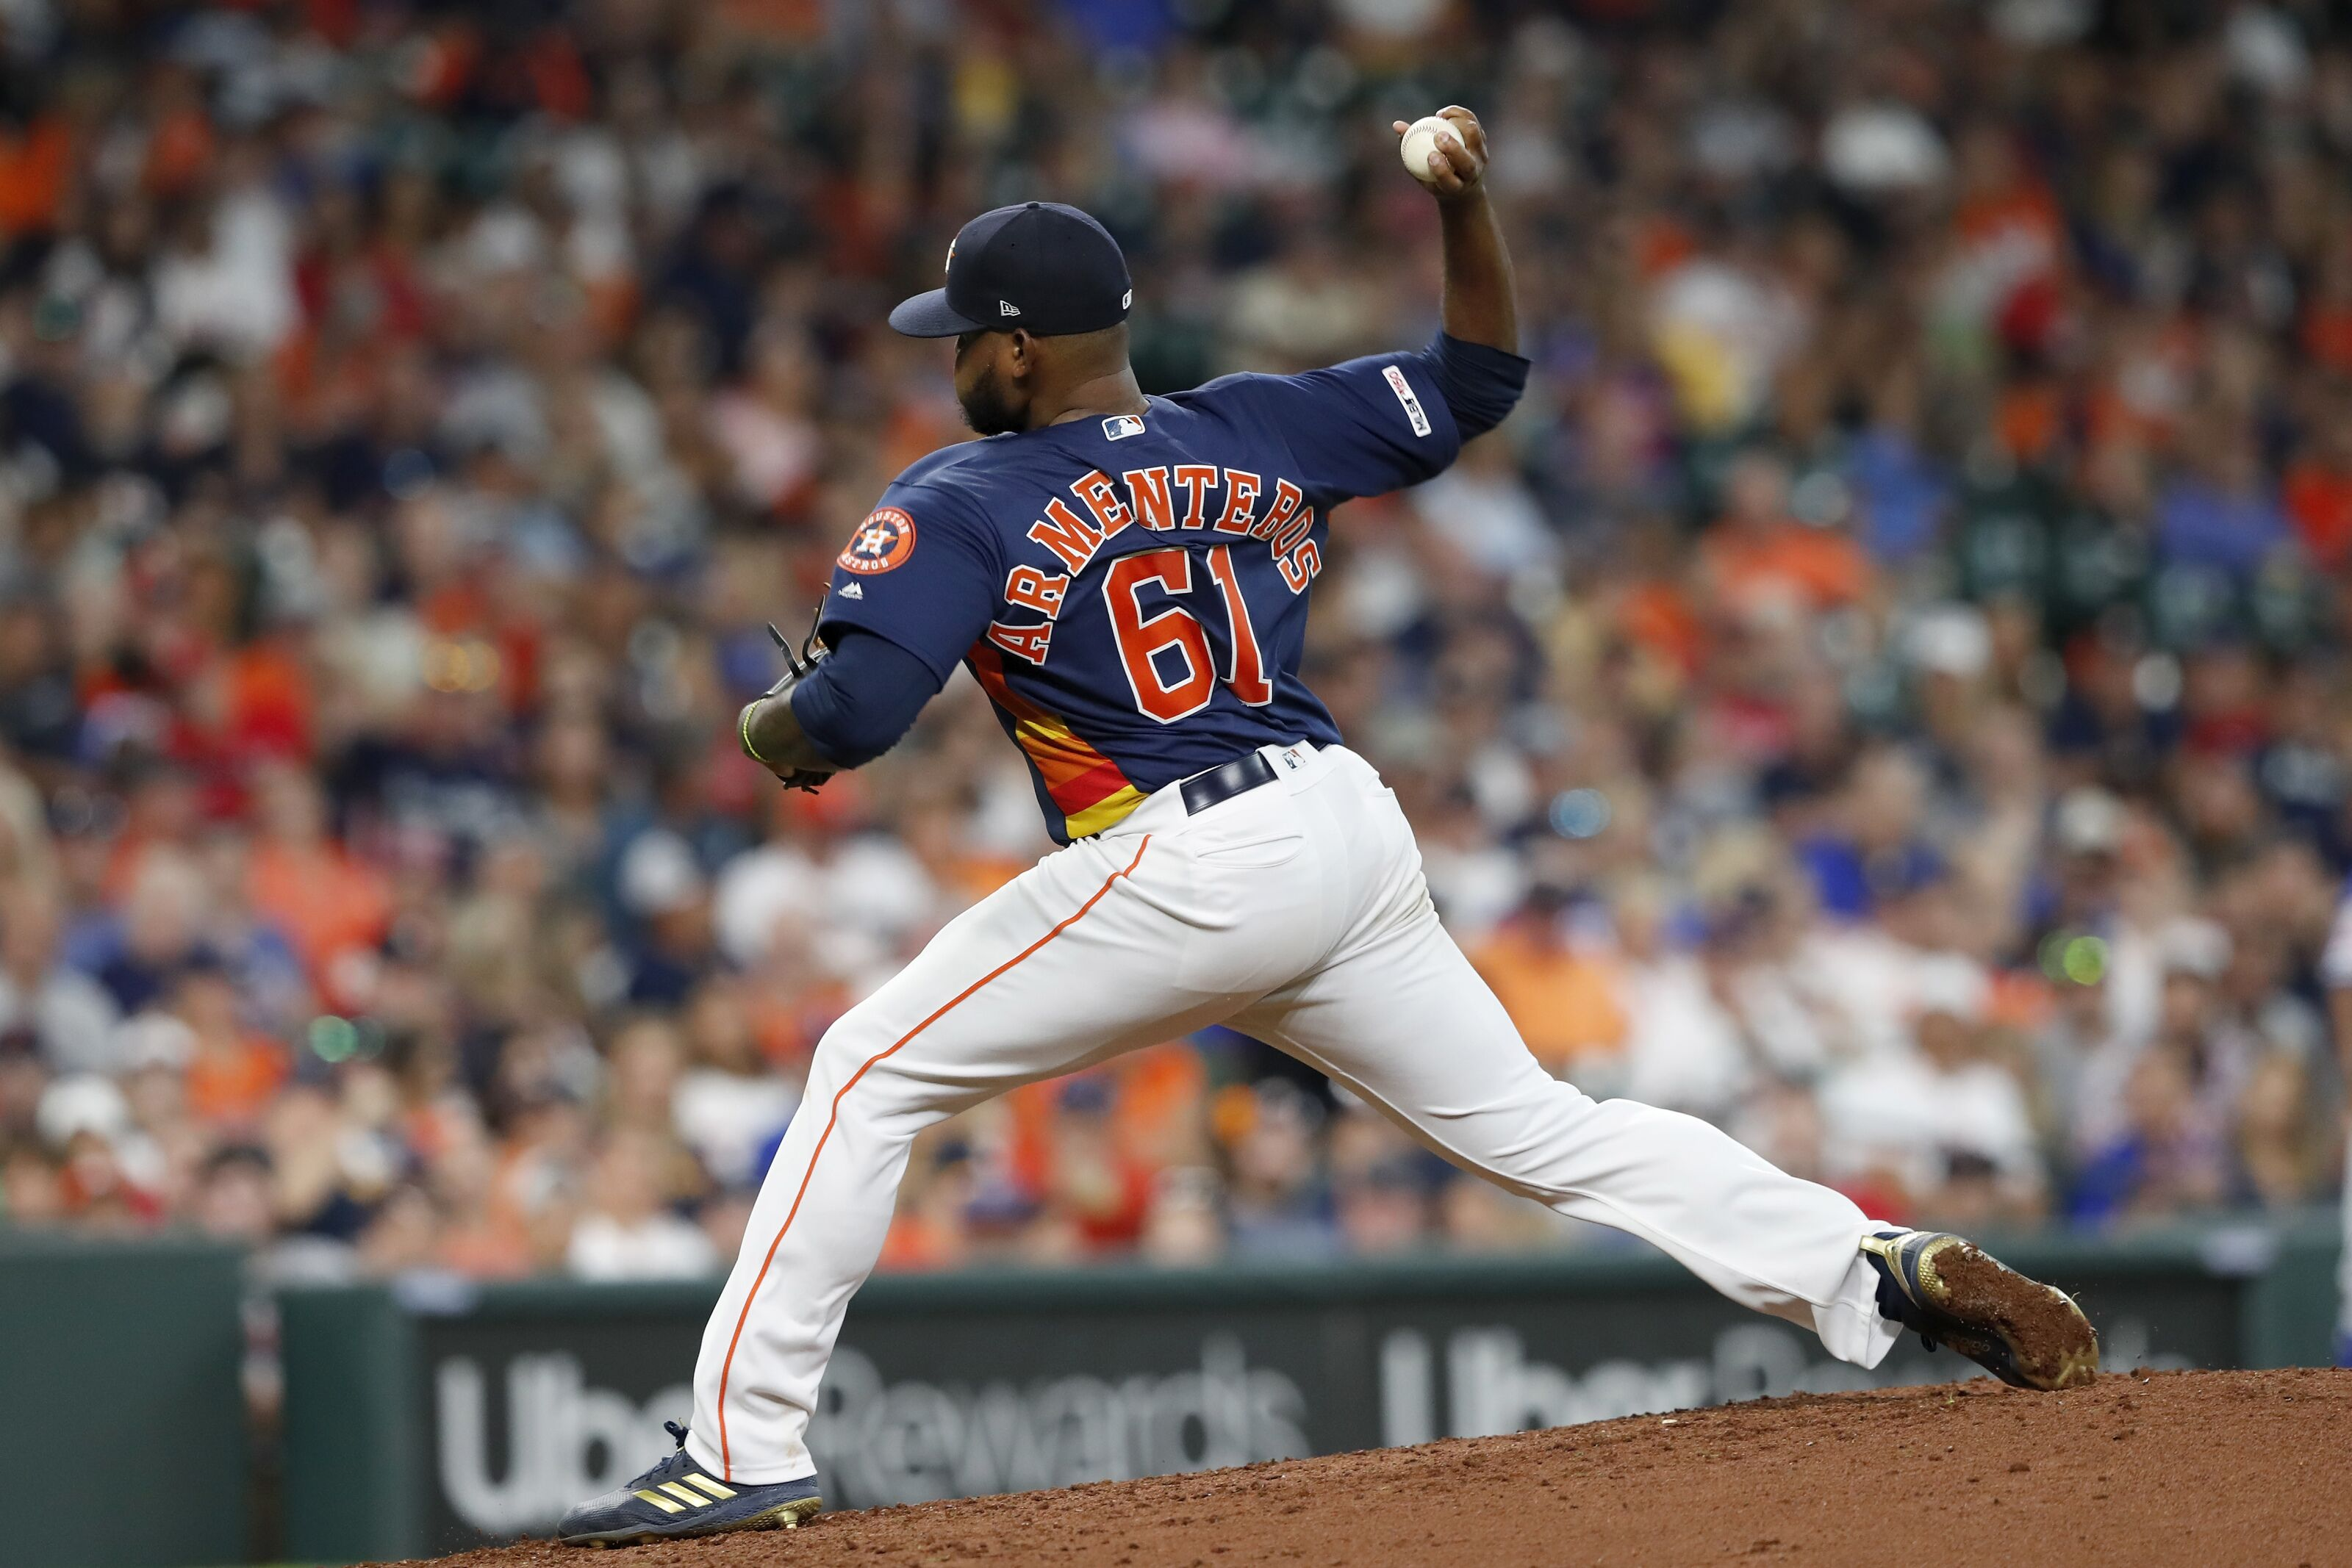 Astros: Rogelio Armenteros takes Gerrit Cole's turn in the rotation